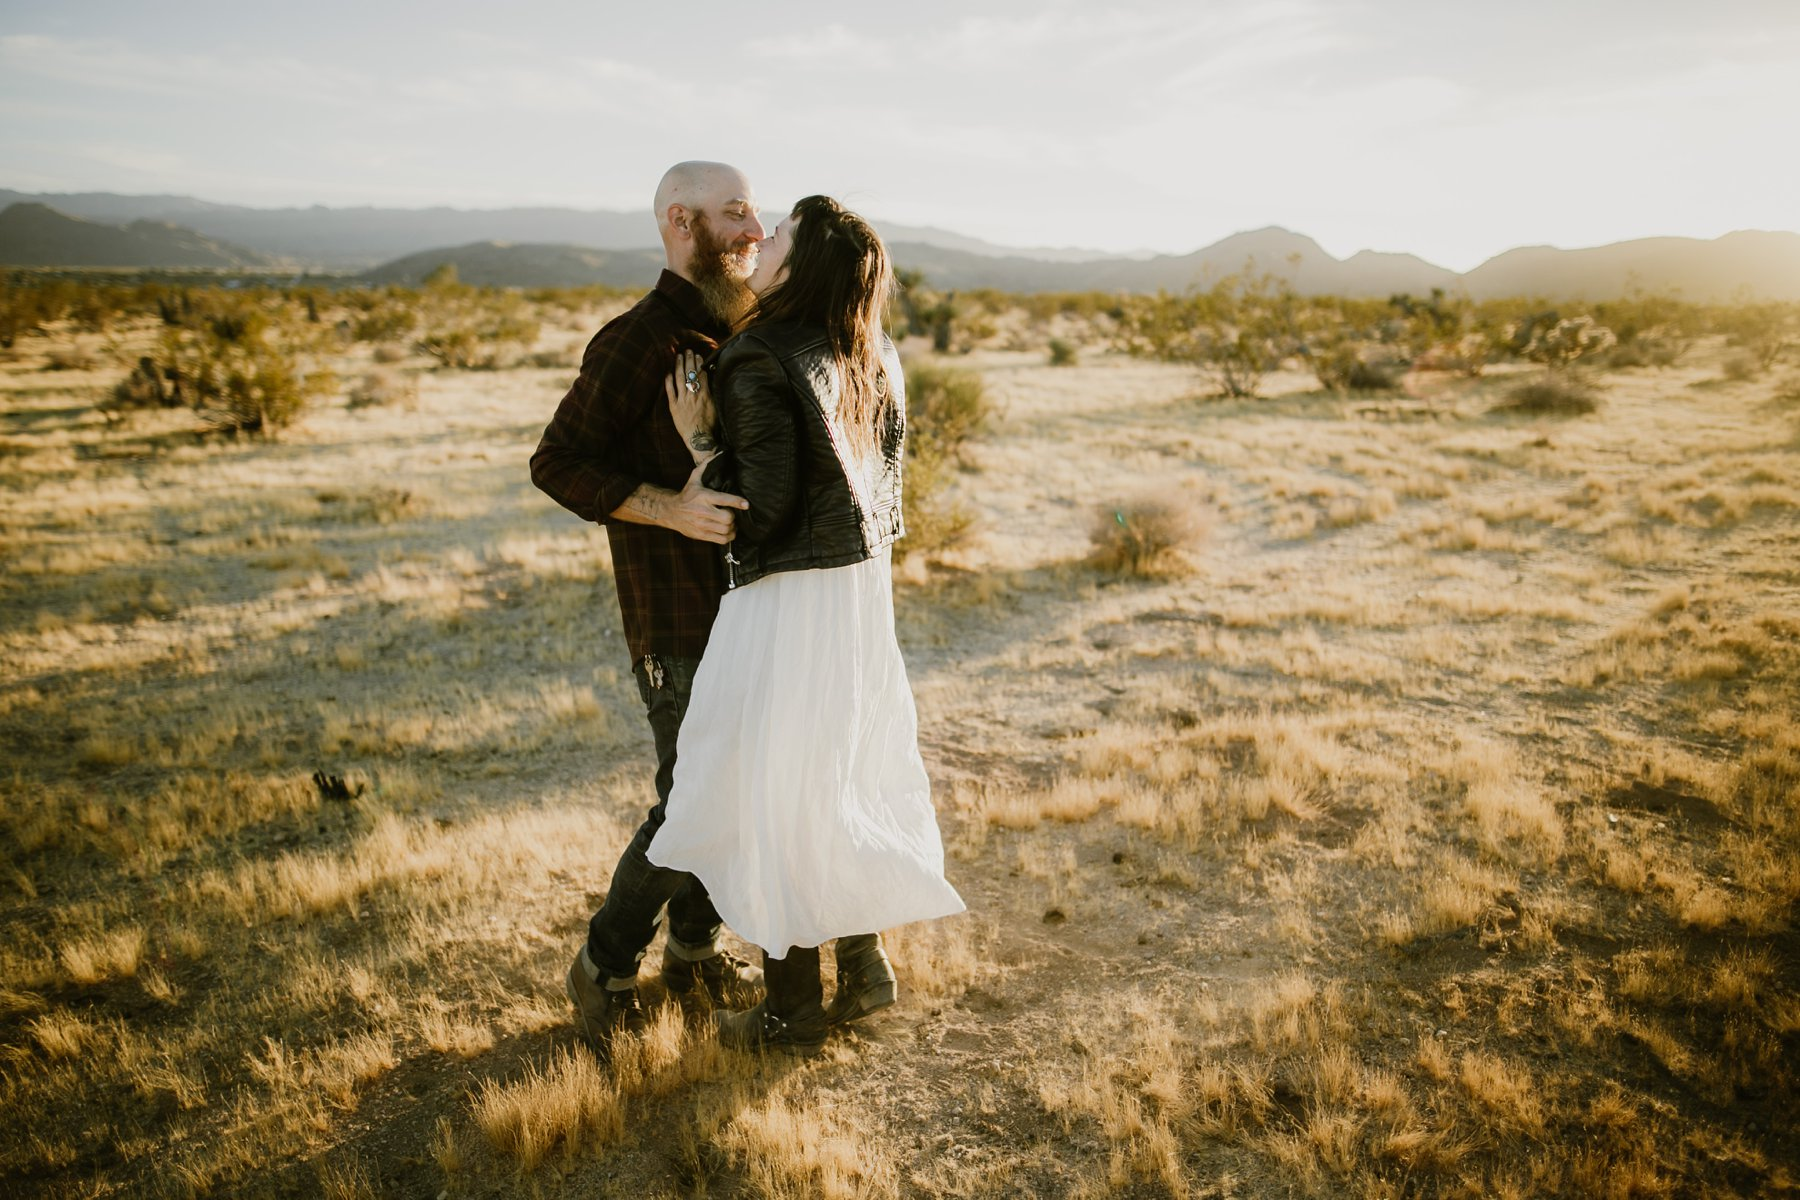 motorcycle-elopement-in-joshua-tree_0007.jpg